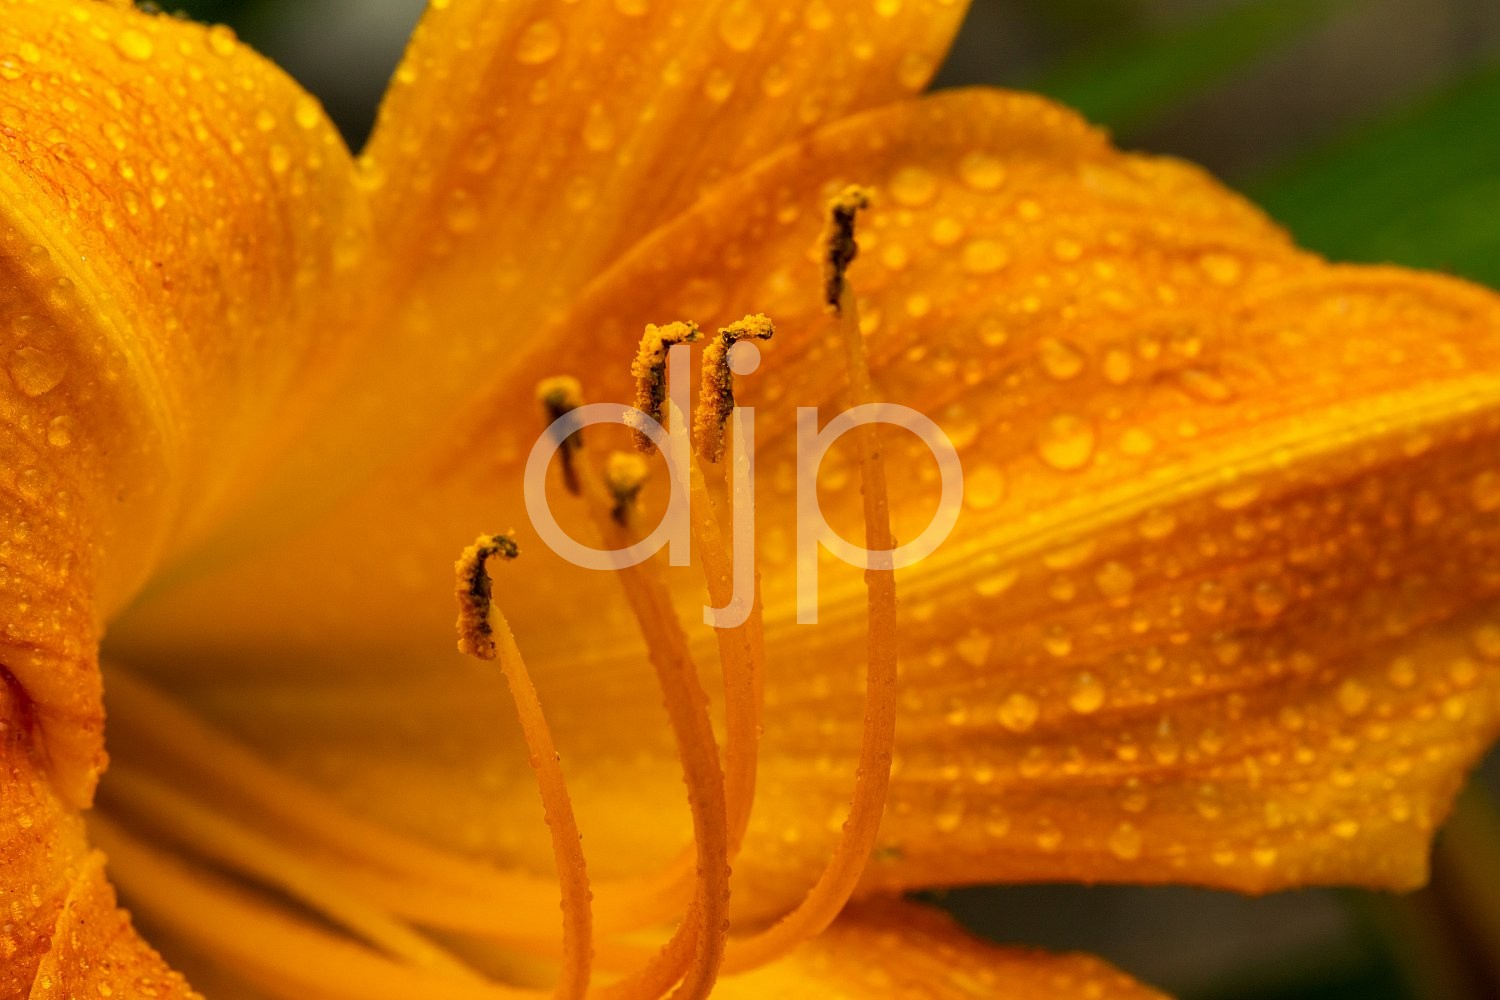 Sugar Land, djonesphoto, excursions with djp, flowers, lily, macro, orange, personal, quarantine, D Jones Photography